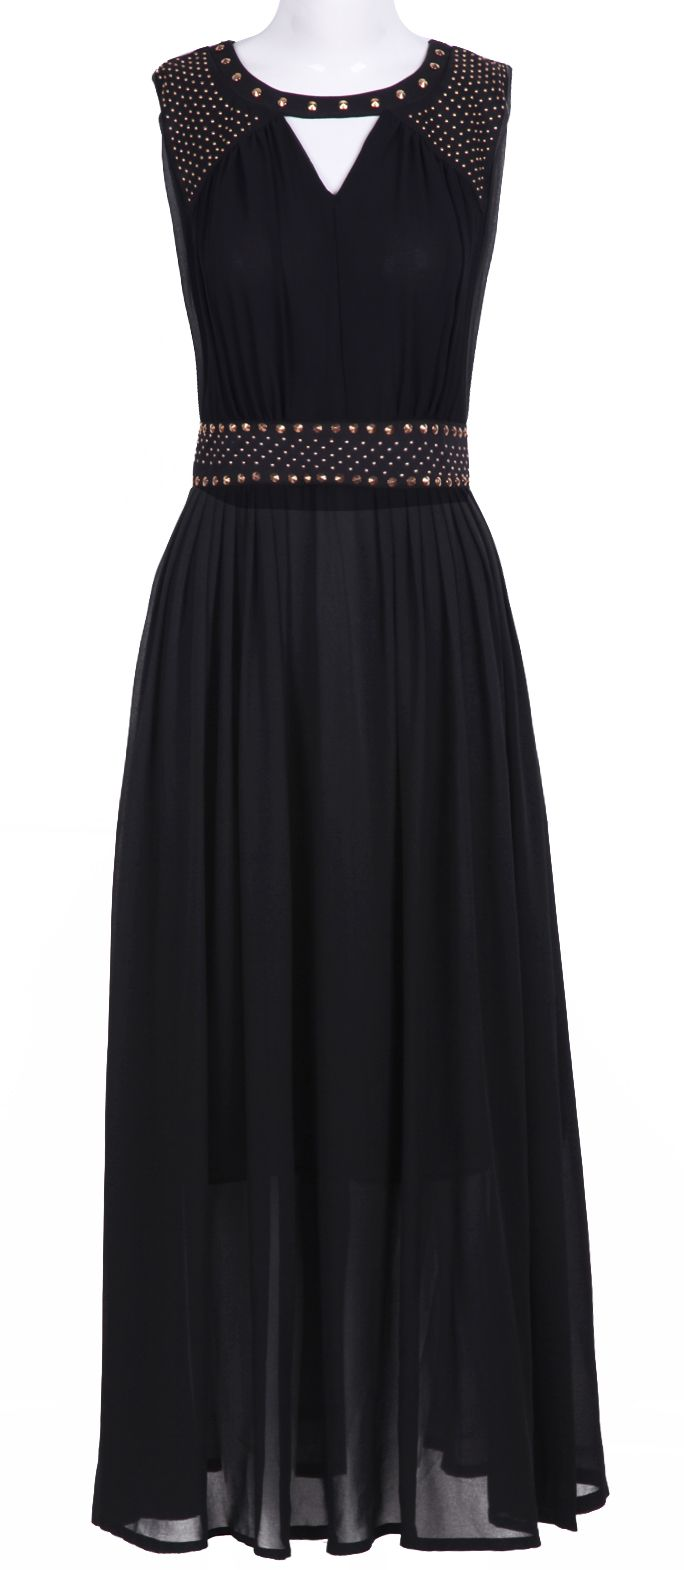 Black sleevelss cut out rivet embellished long dress my style